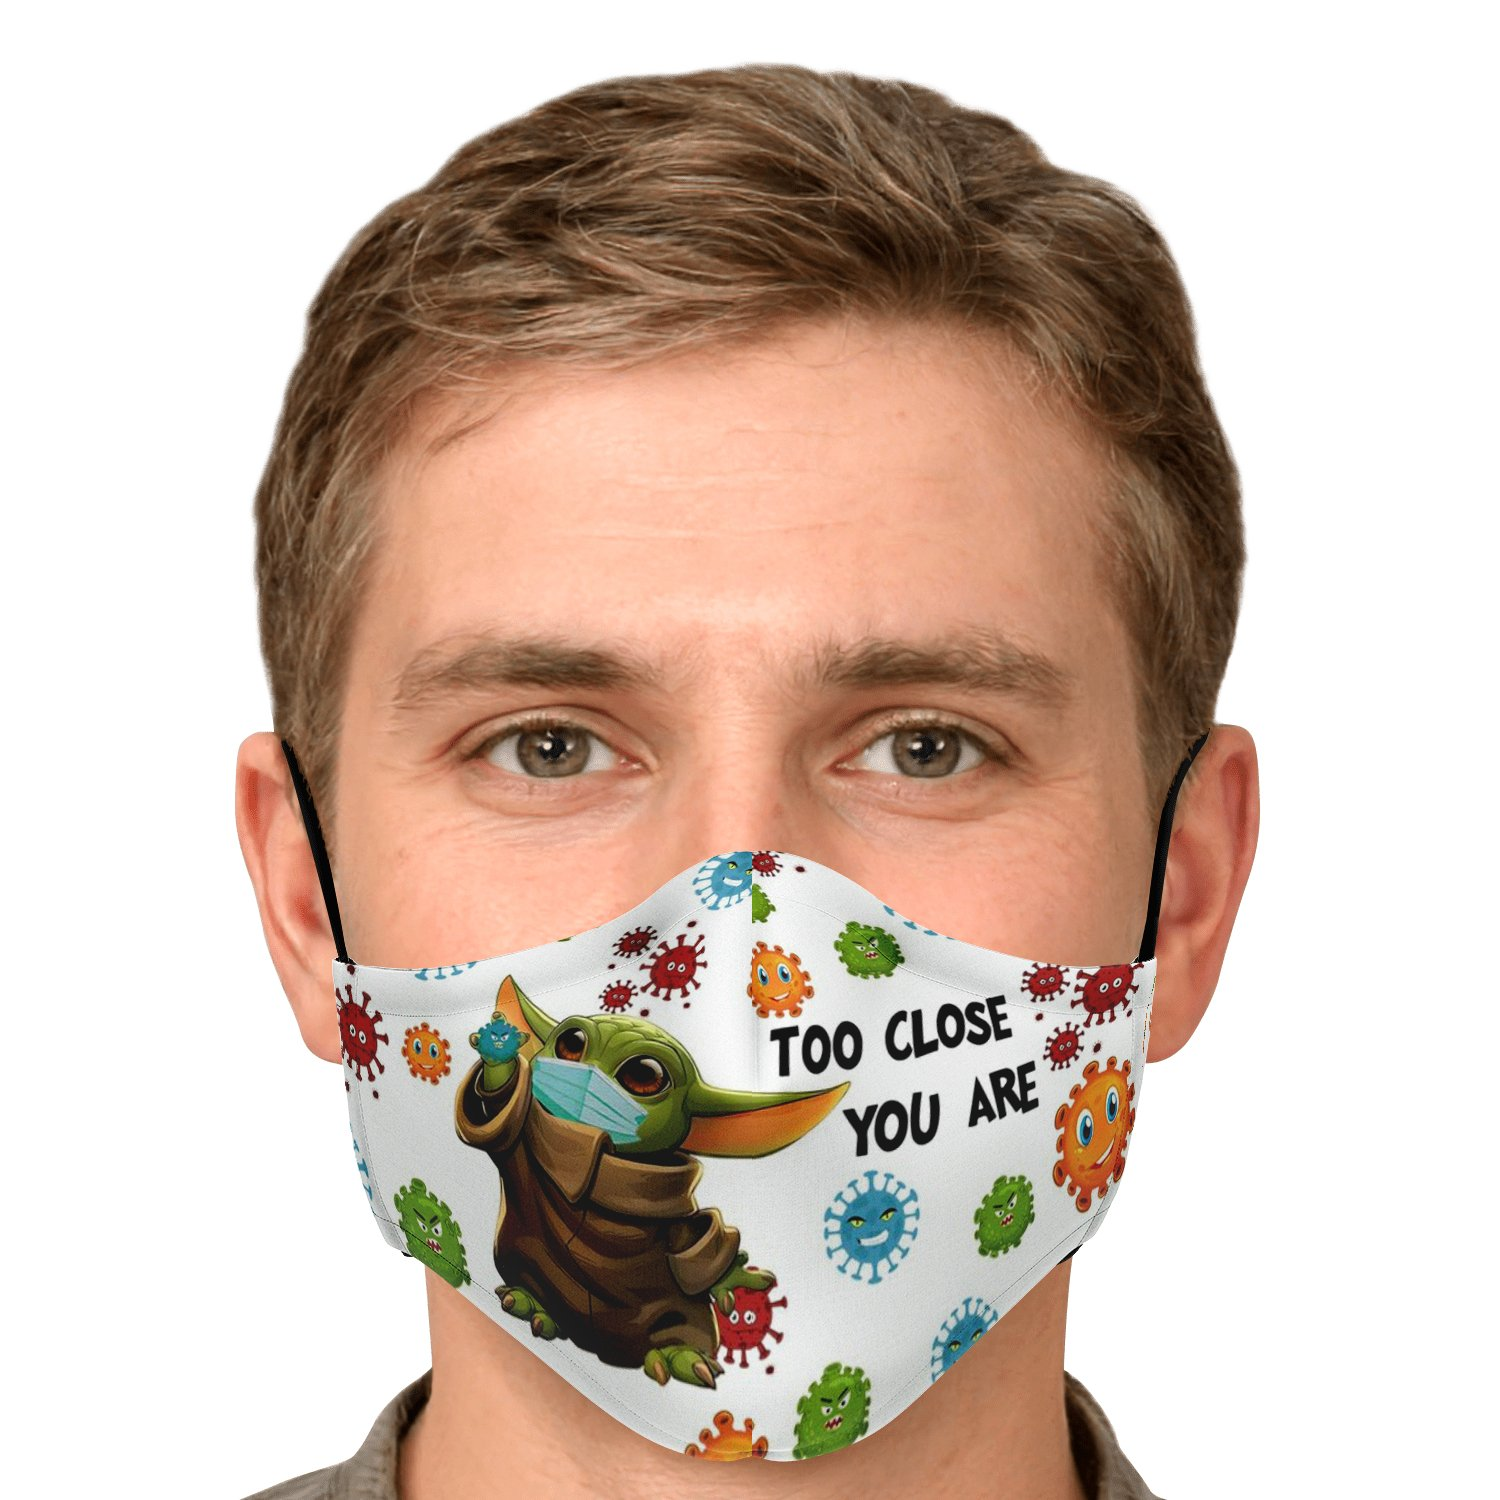 Too Close You Are Stay Away Covid-19 Baby Yoda Face Mask 5